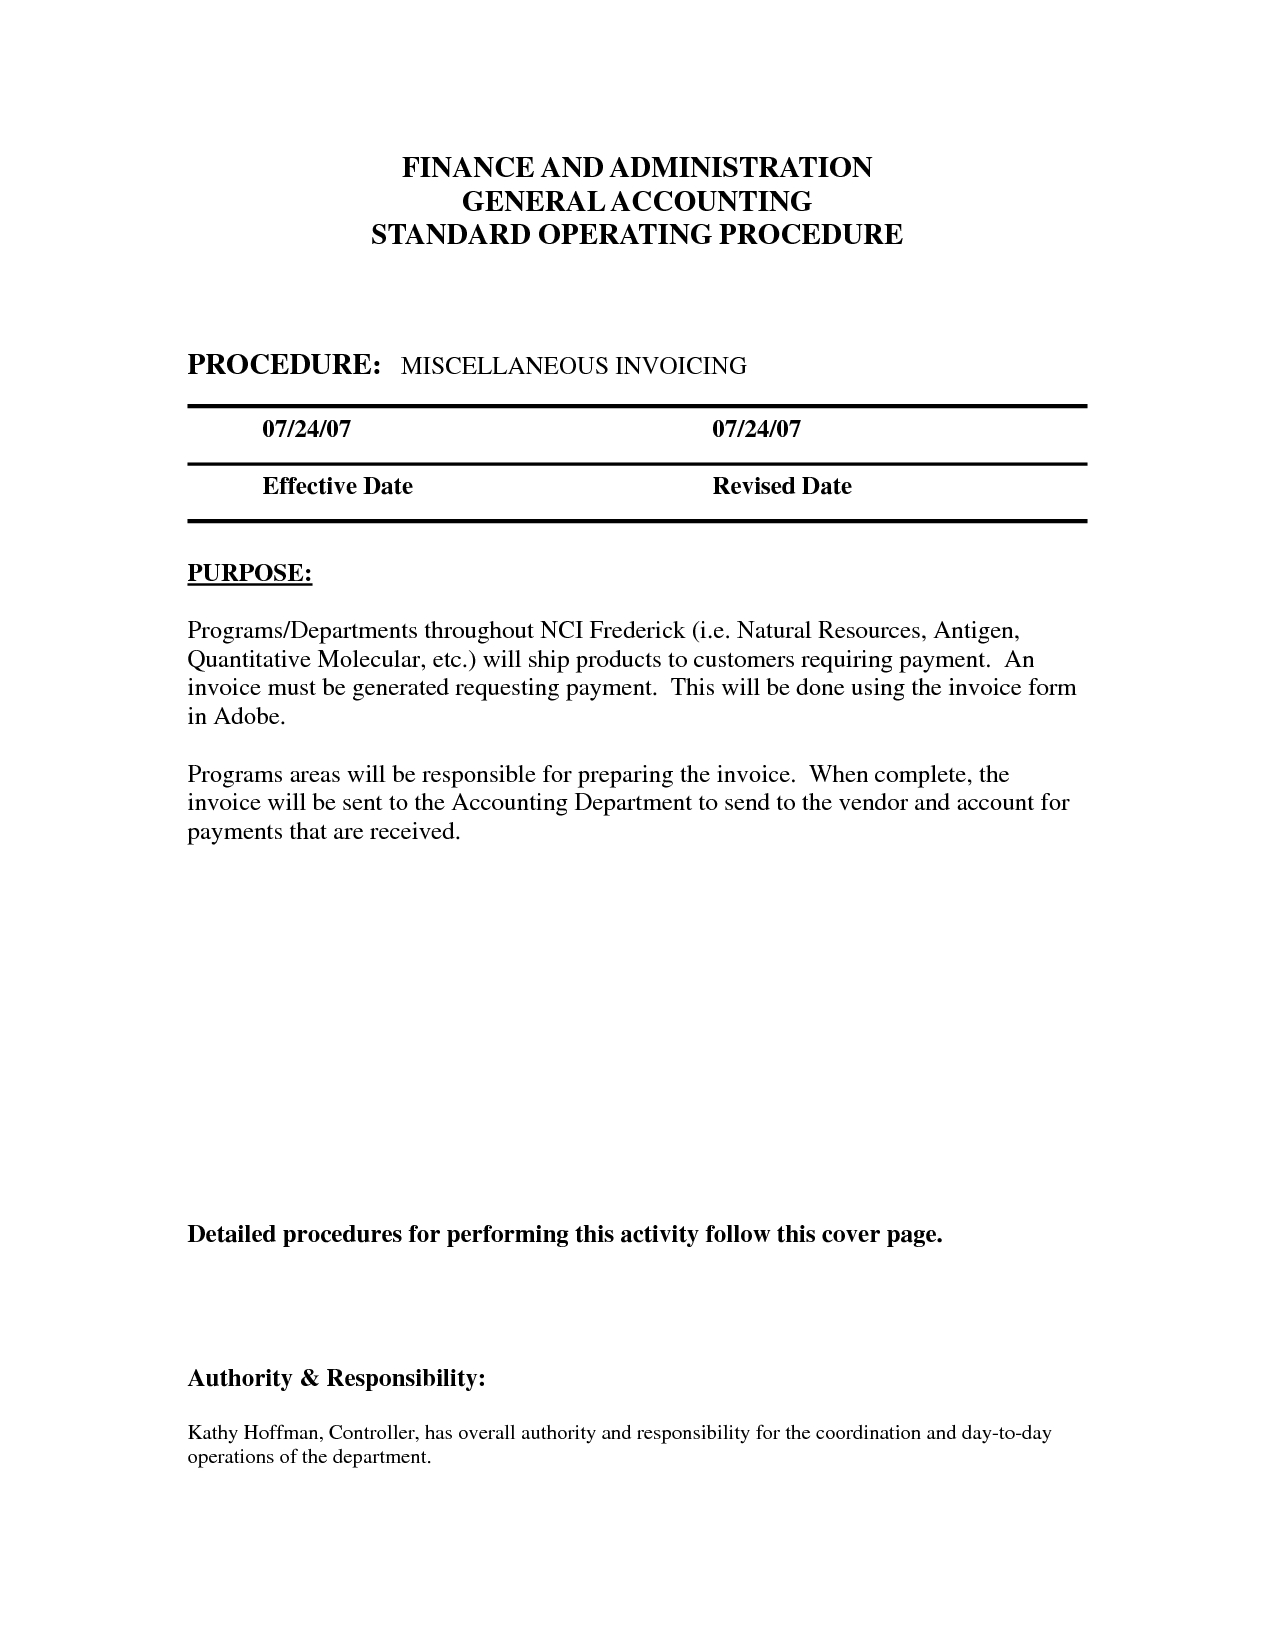 sample invoice net 30 resume project manager entry level net 30 invoice